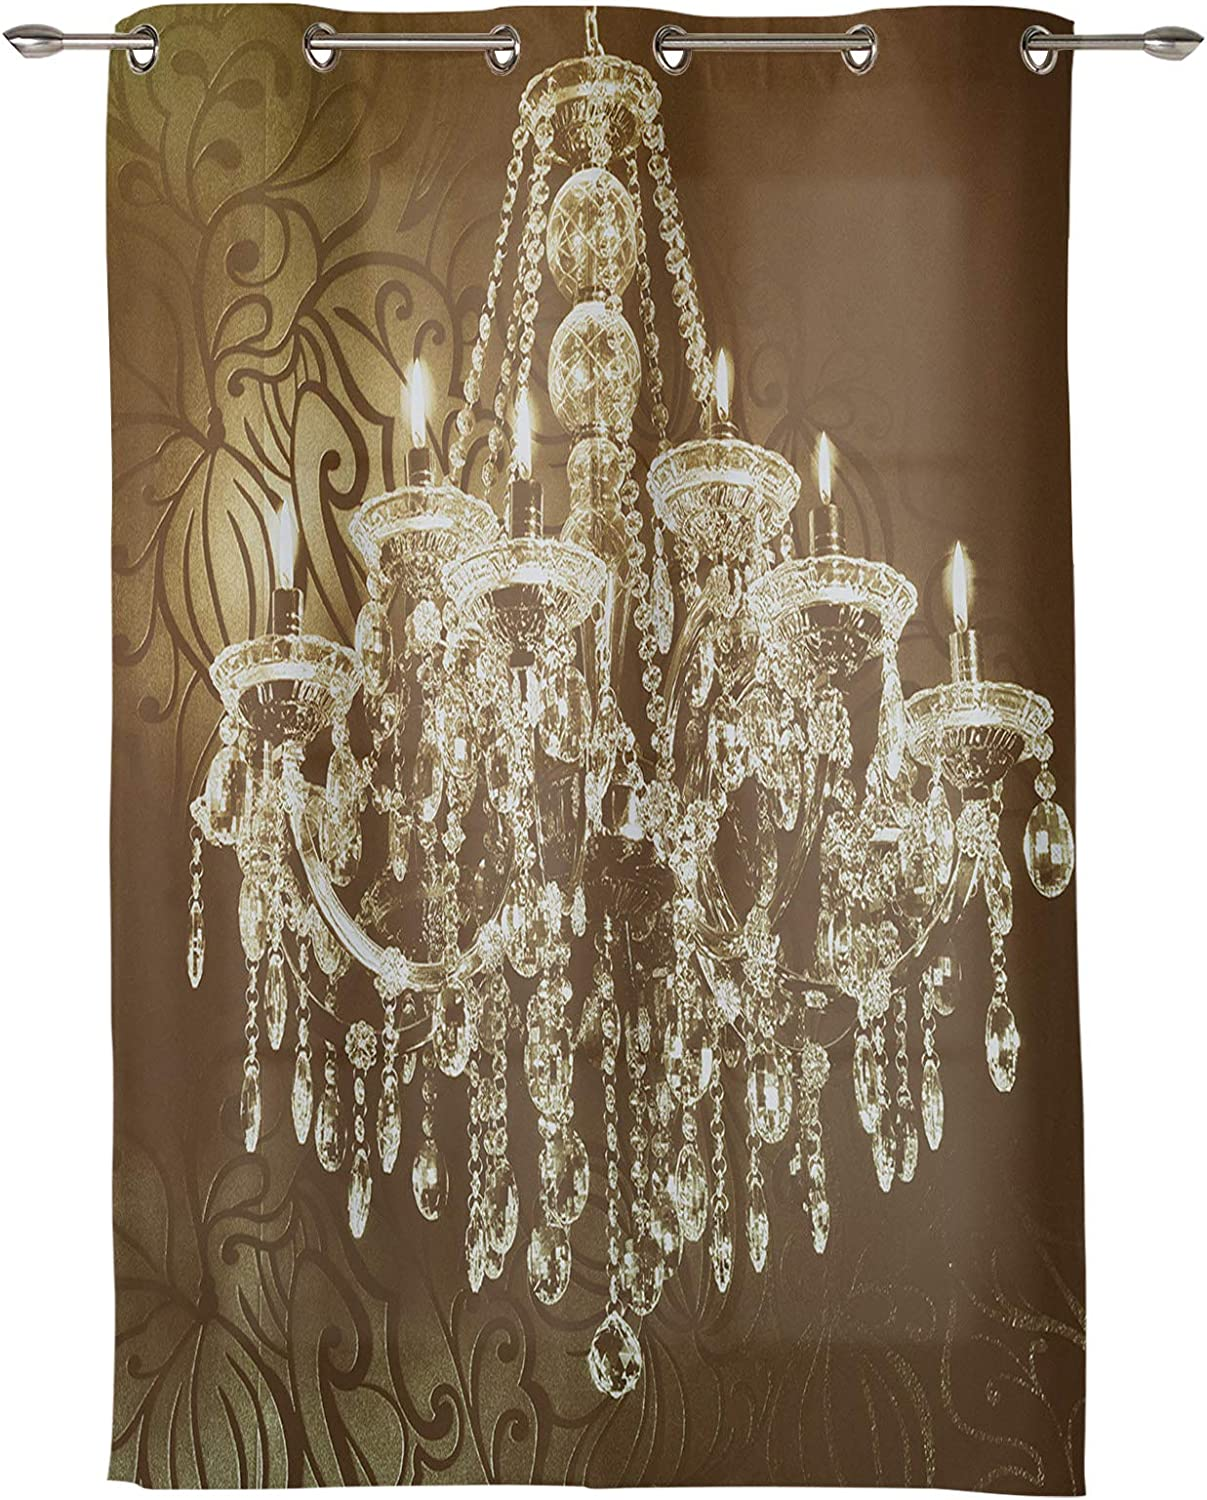 EZON-CH Window Curtain with Grommet 2021new shipping free shipping Crystal Pain New life Oil Chandelier